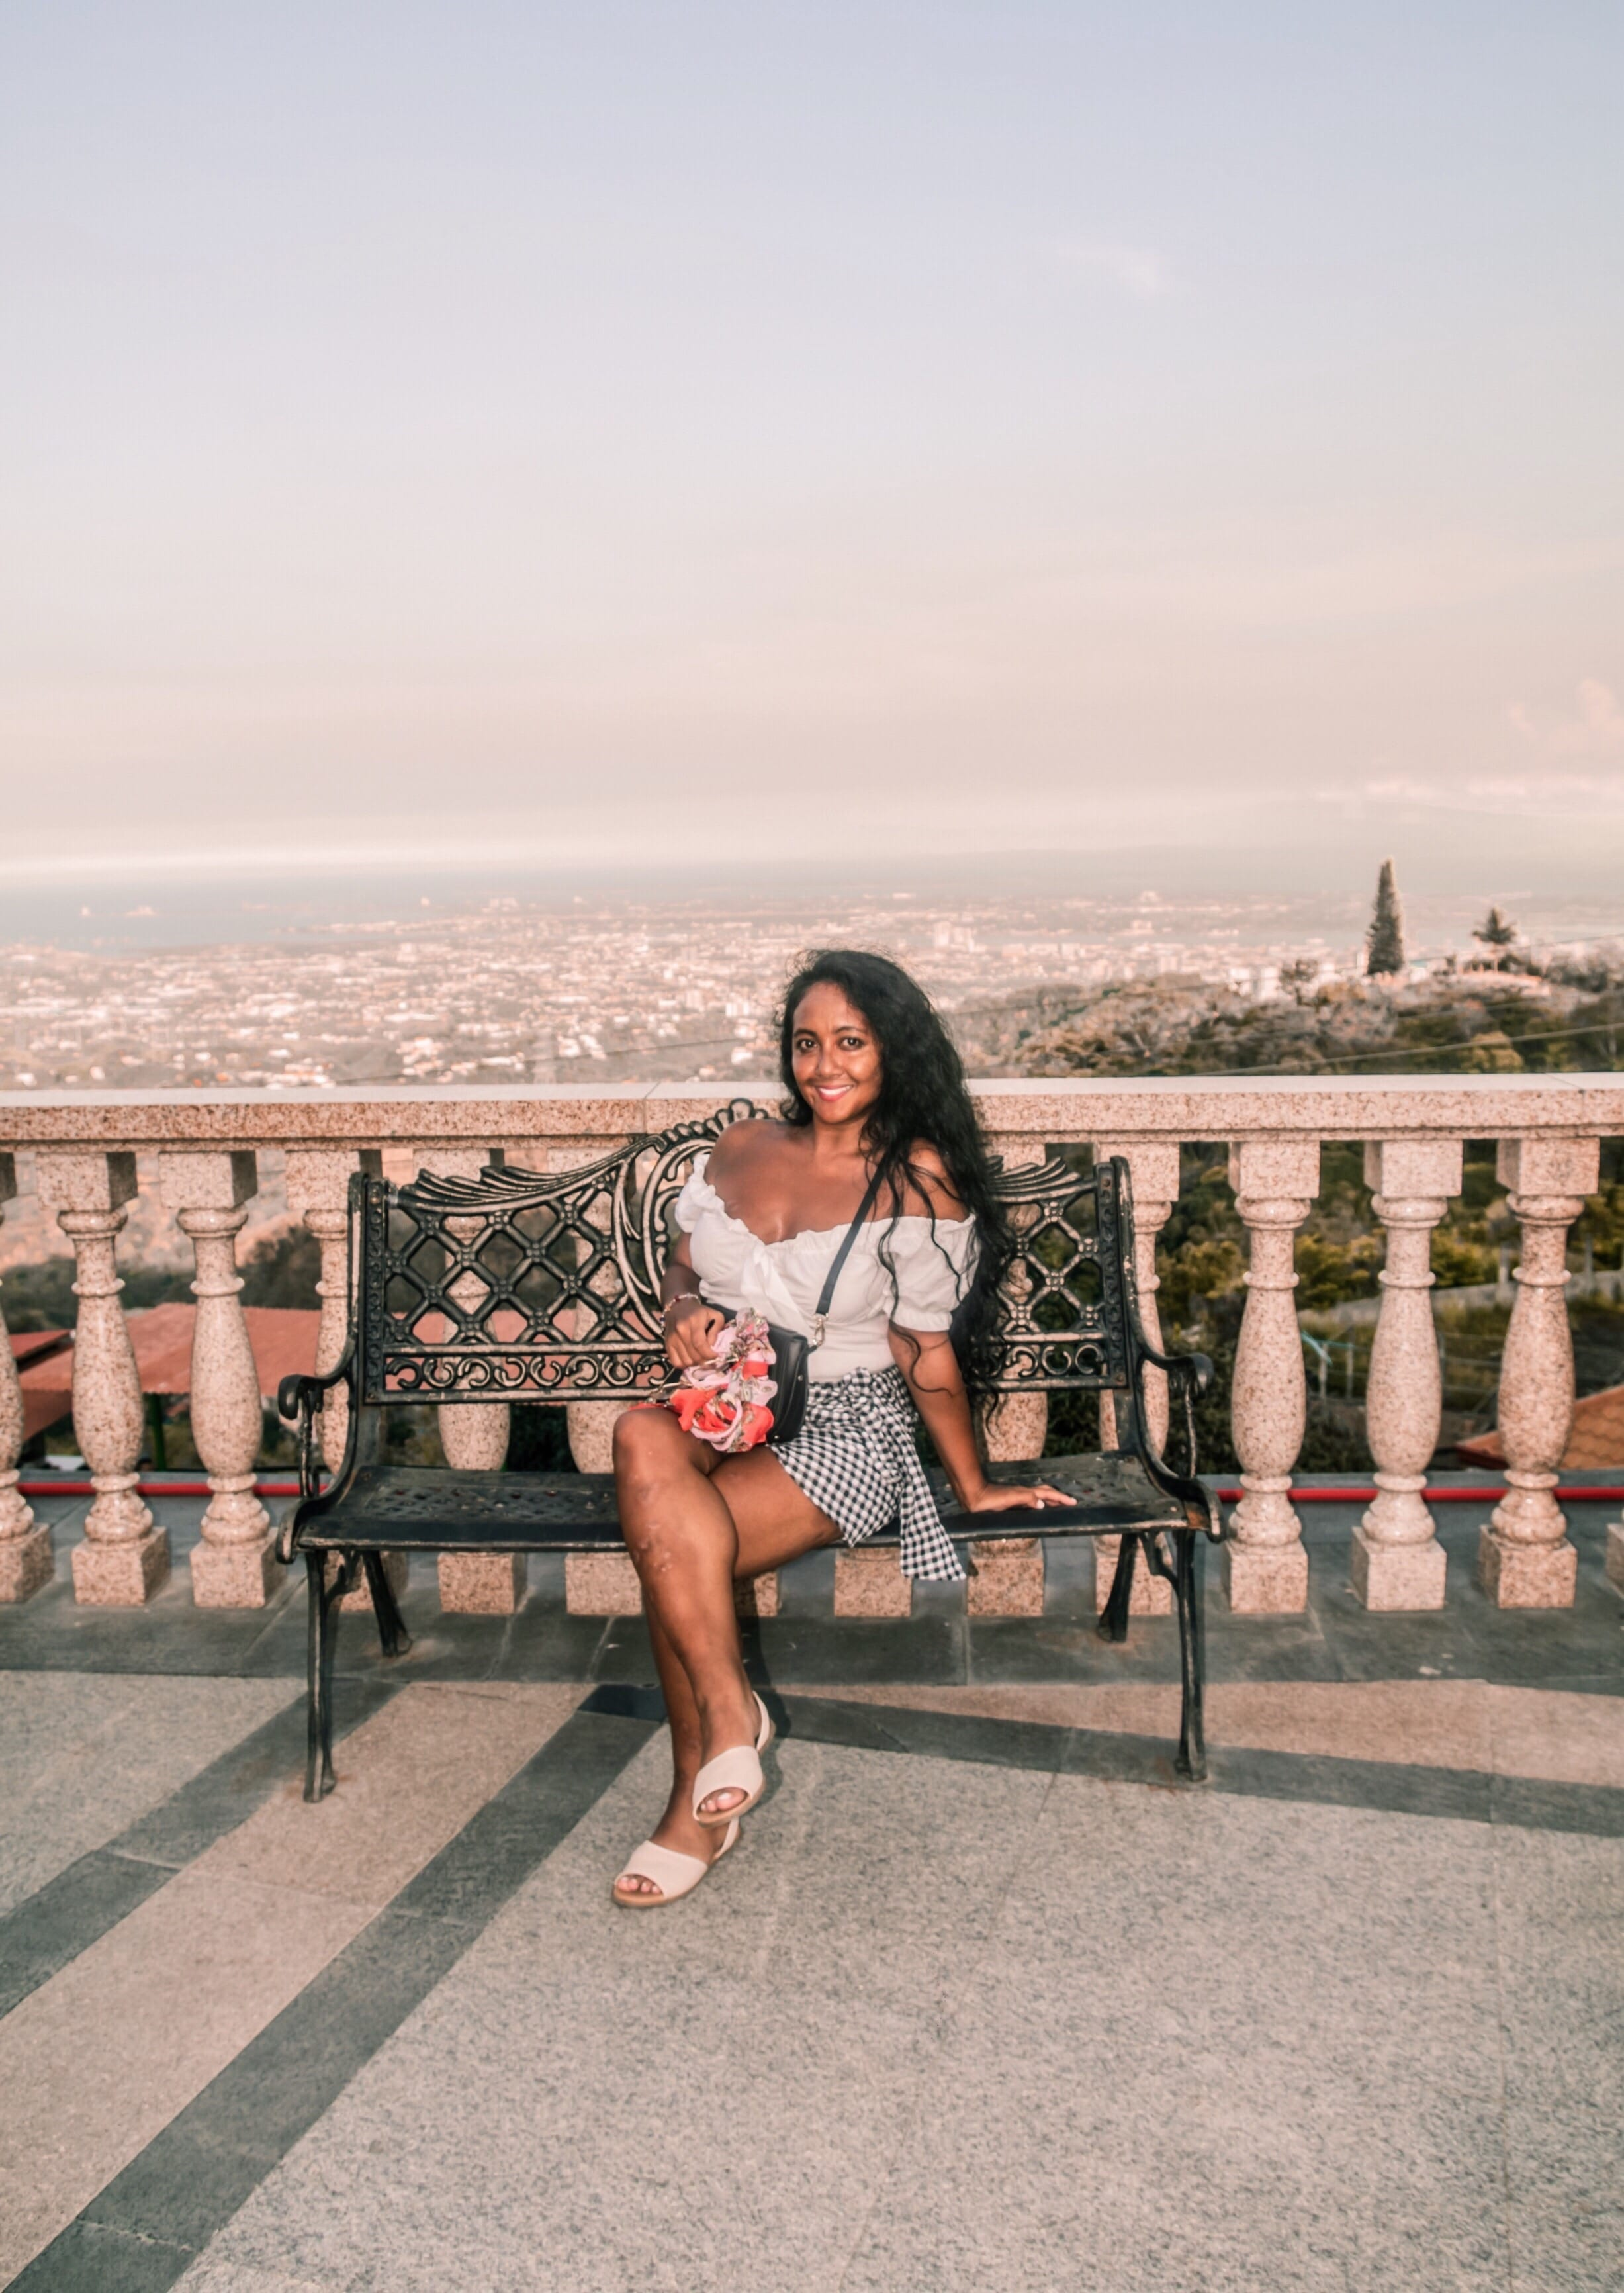 Paris Chic Style Temple Of Leah Cebu City Philippines Fashion Travel Blog Lifestyle Fun Things To do At Home When Bored Lockdown Coronavirus